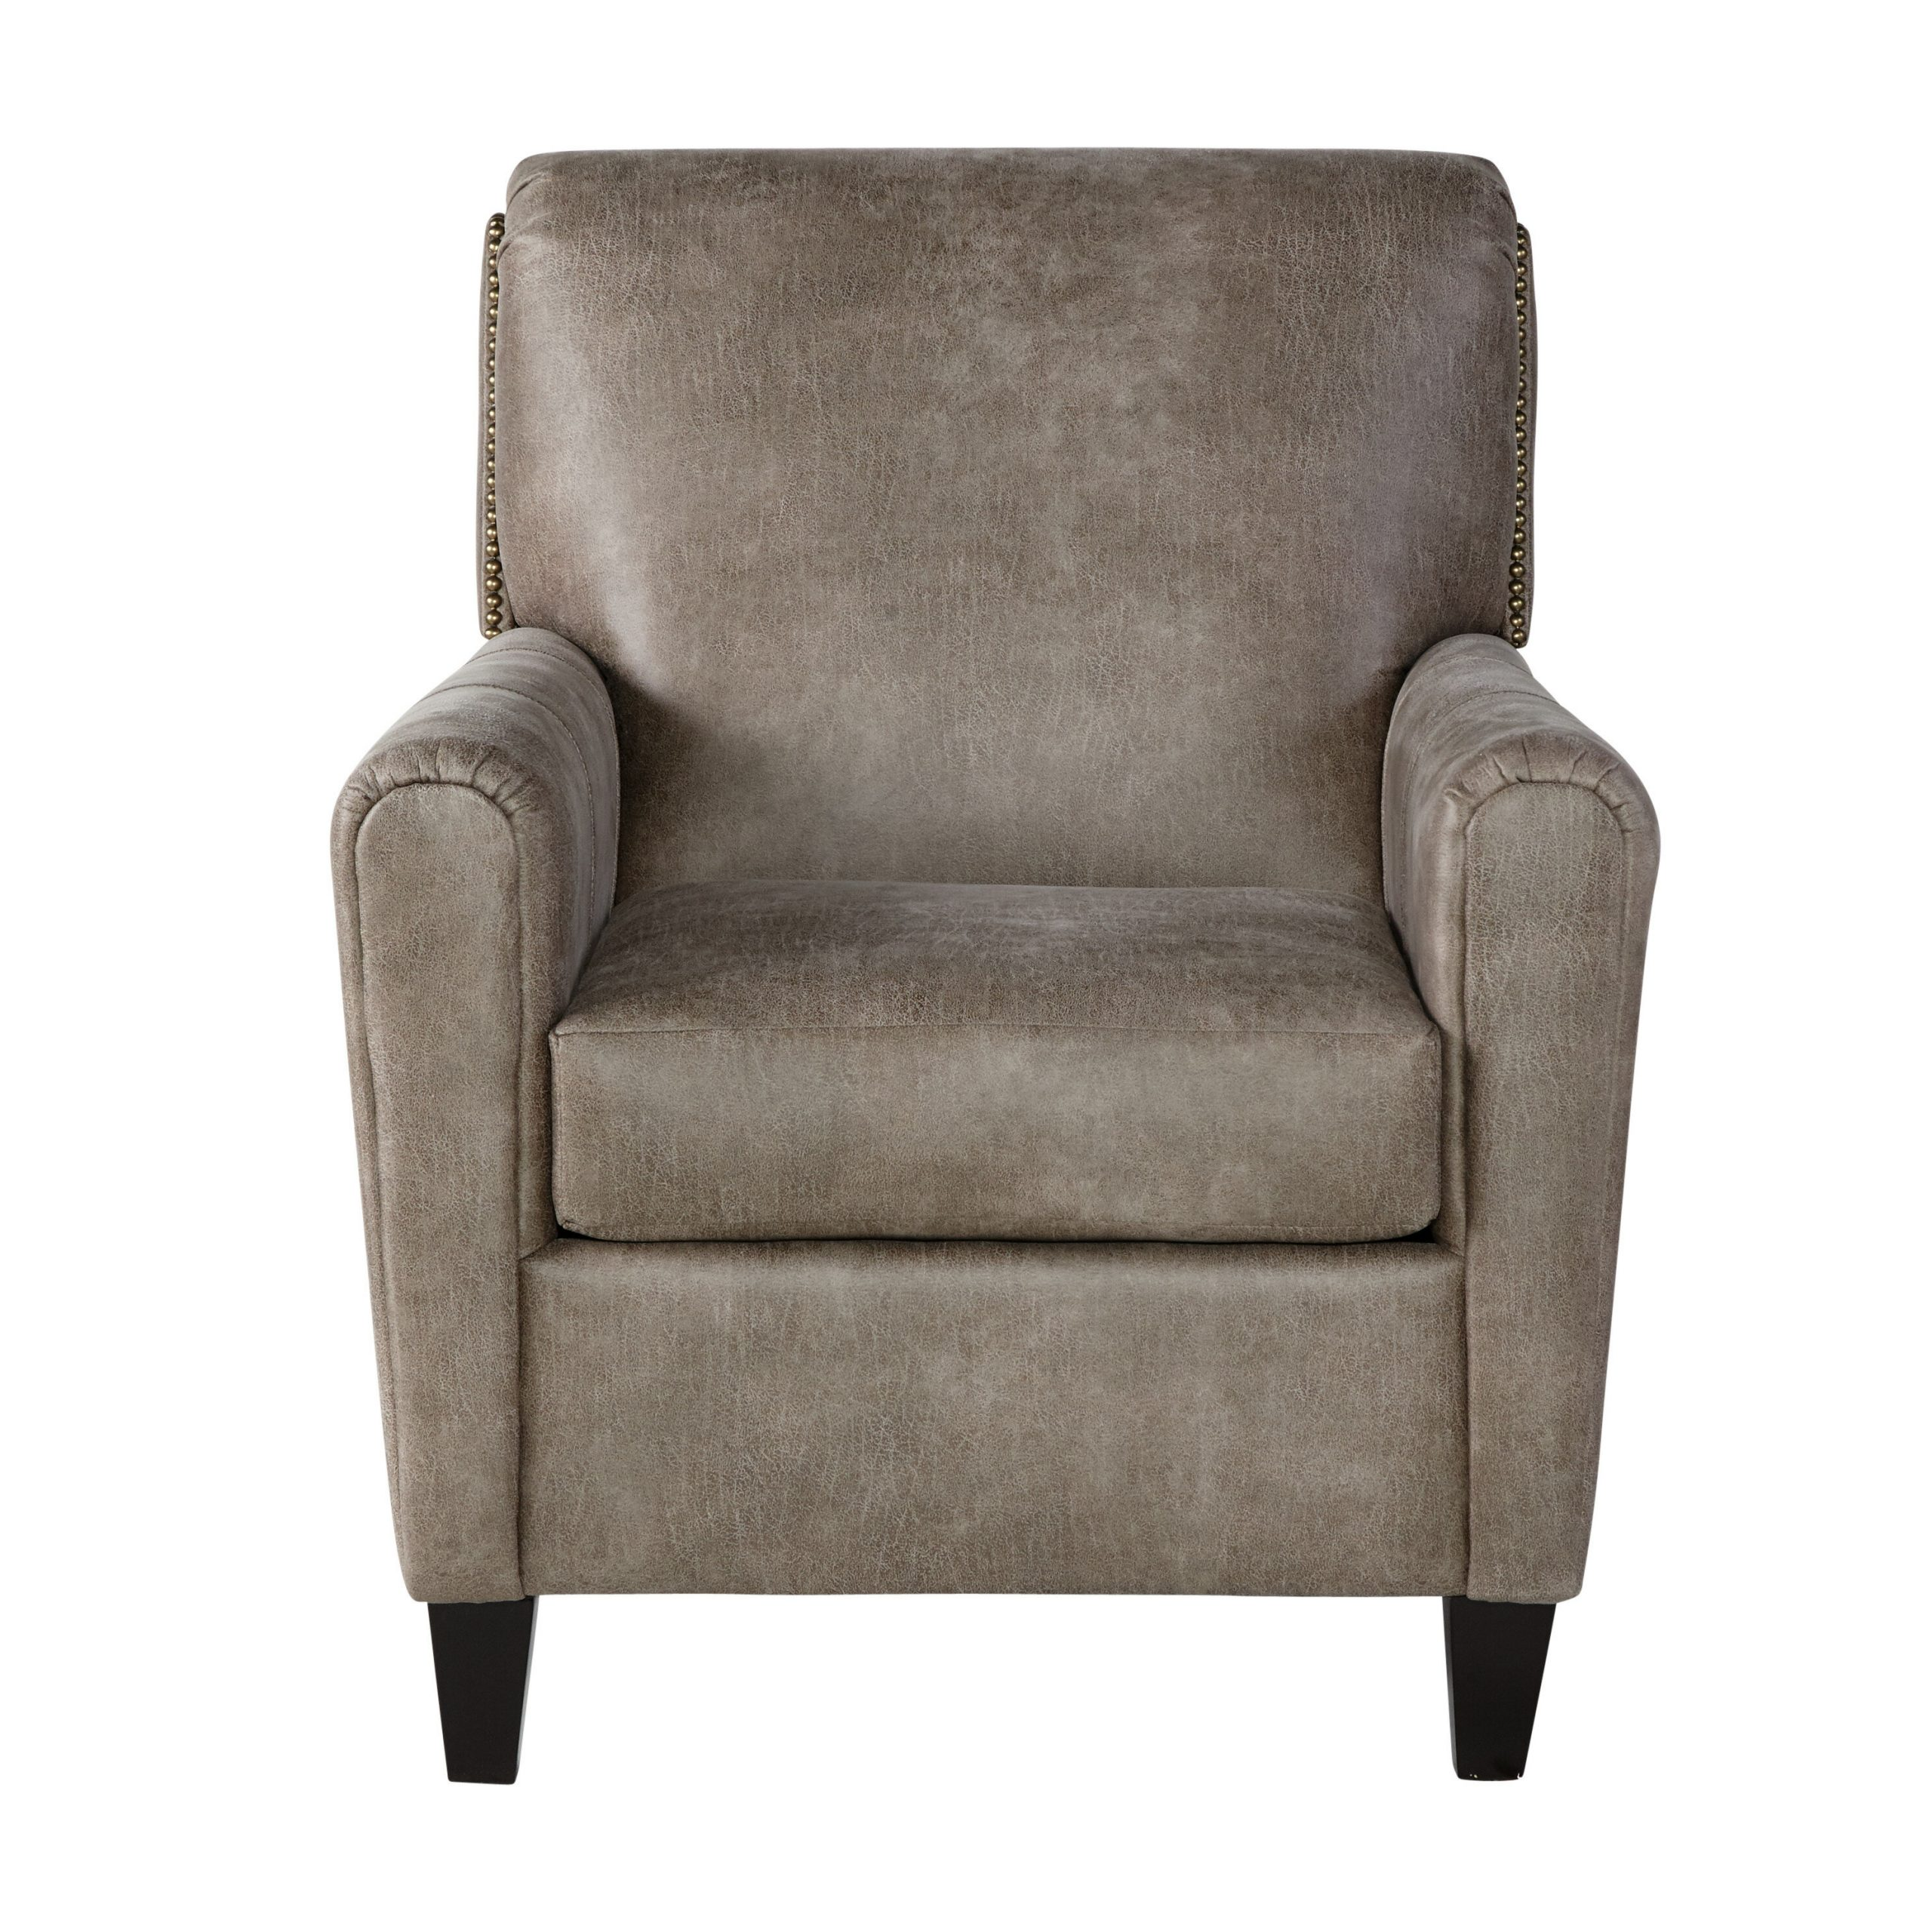 """Hammitt 31"""" W Polyester Armchair With Regard To Popel Armchairs (View 14 of 15)"""